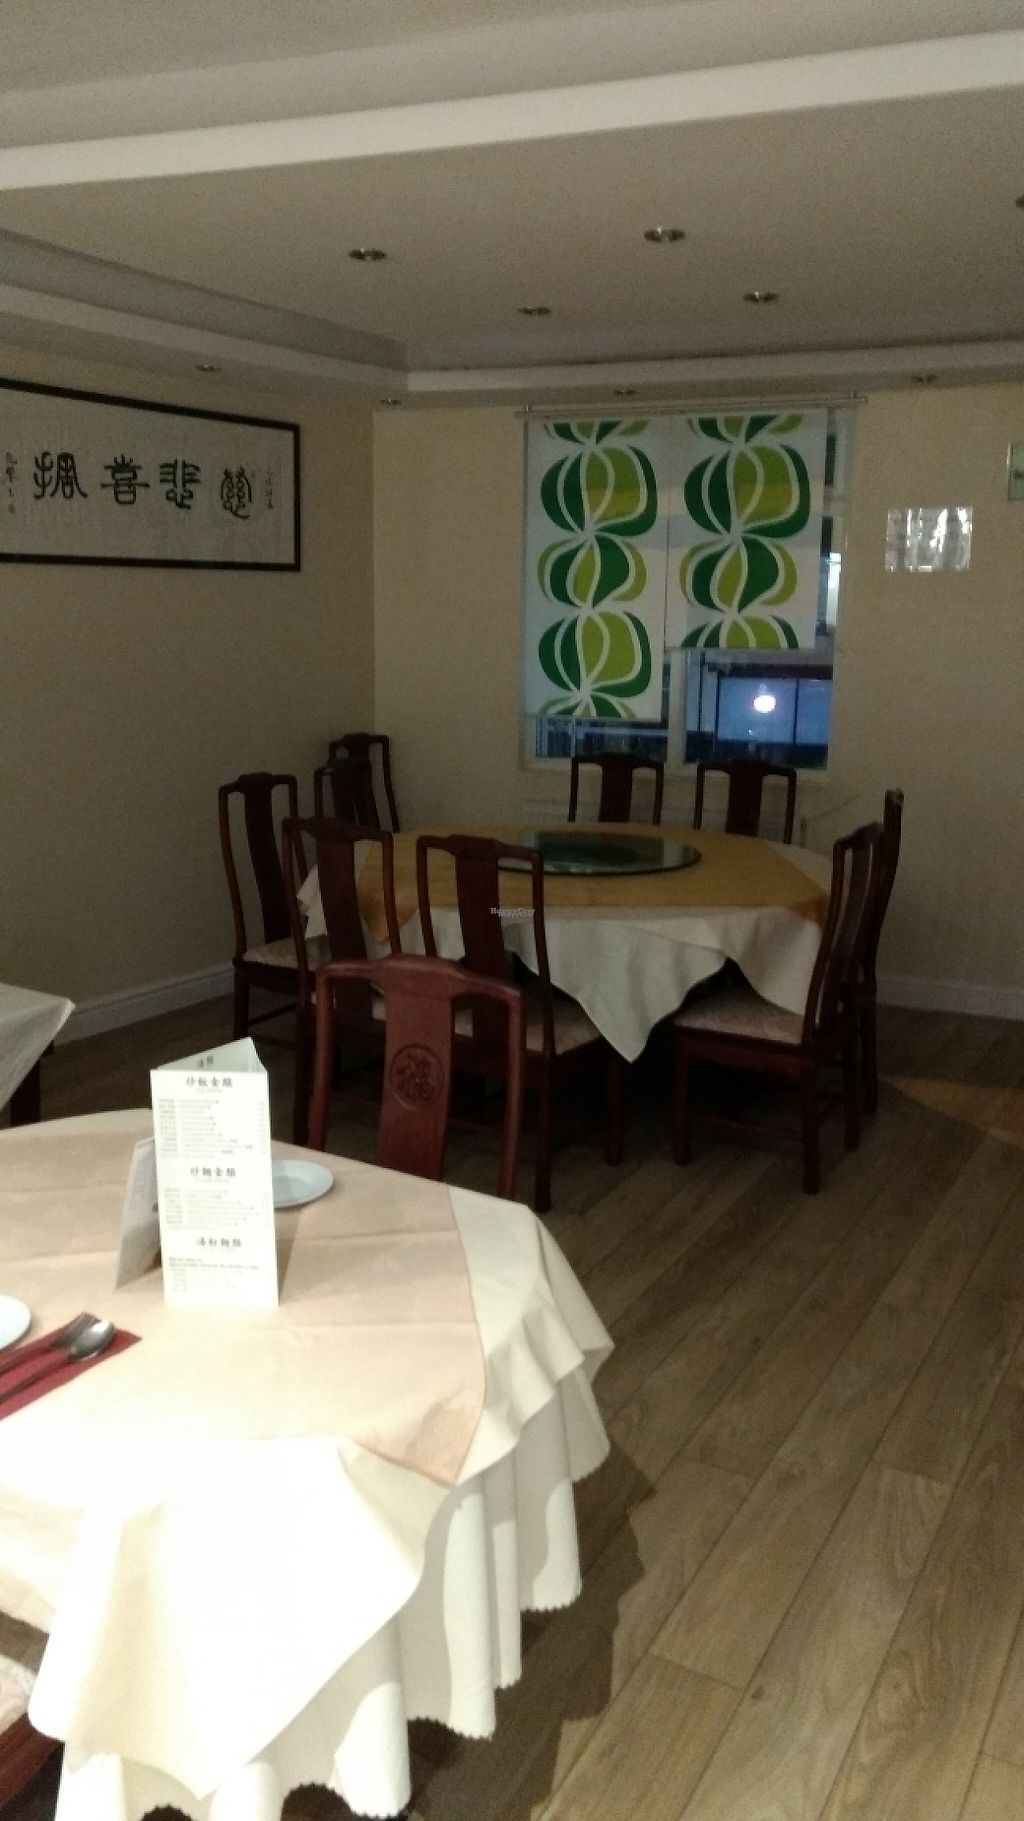 """Photo of Lotus Vegetarian Kitchen  by <a href=""""/members/profile/craigmc"""">craigmc</a> <br/>upstairs <br/> April 15, 2017  - <a href='/contact/abuse/image/47789/248262'>Report</a>"""